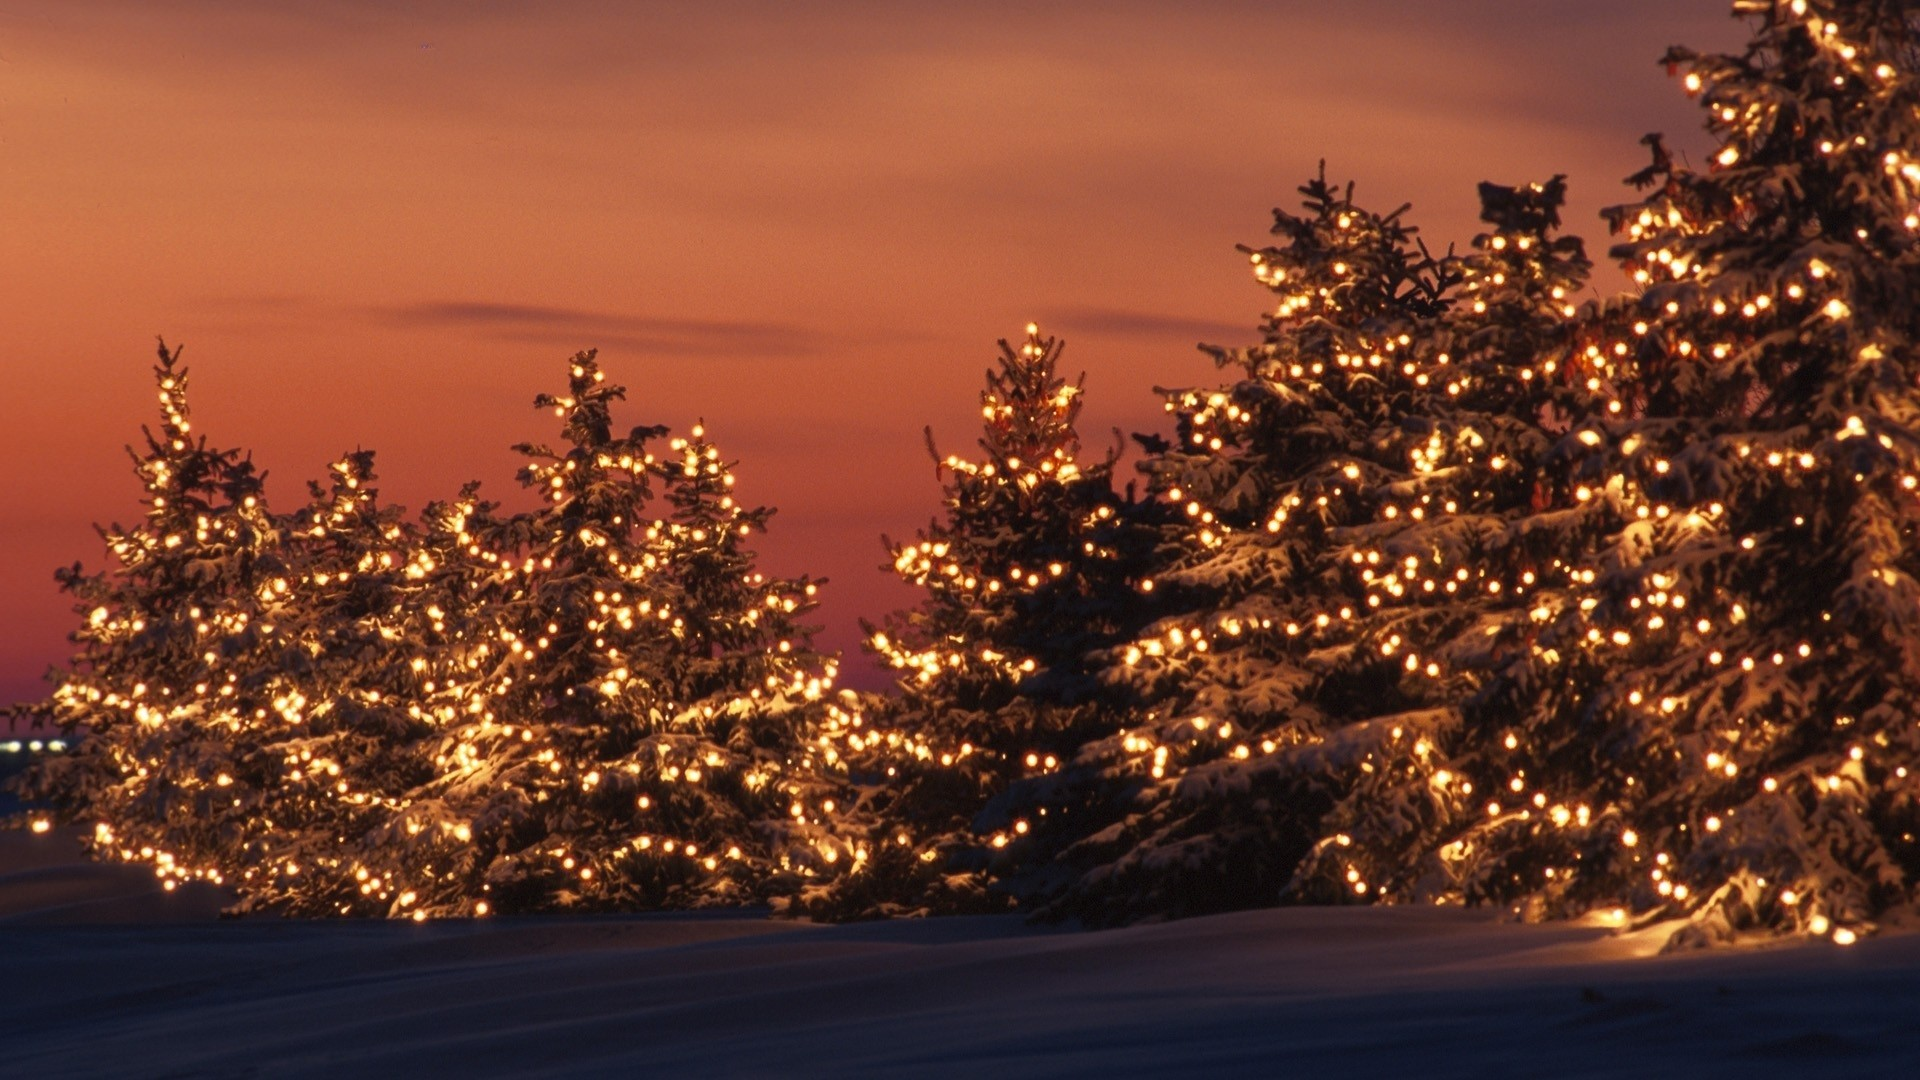 1920x1080 Free-Desktop-Christmas-Lights-Wallpapers-Winter